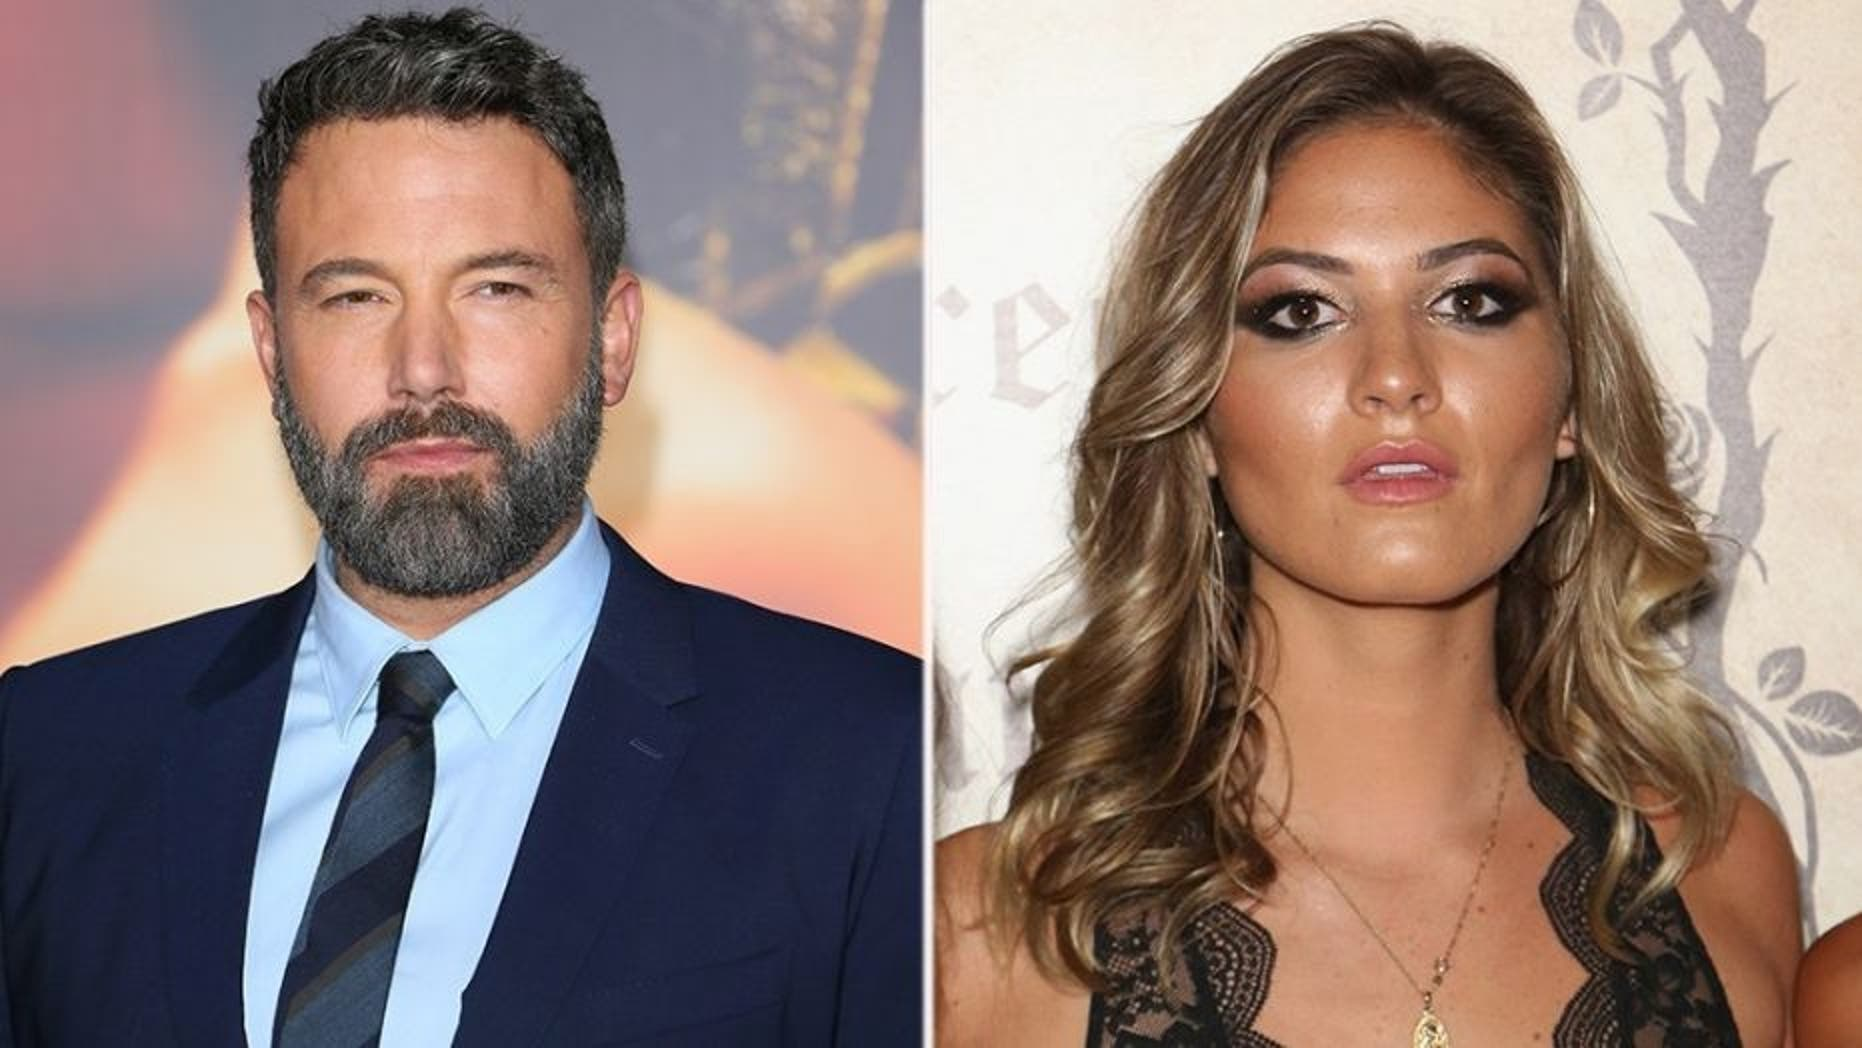 Ben Affleck's ex-wife, Jennifer Garner, is reportedly not surprised that the actor has moved on from Lindsay Shookus to a Playboy model, Shauna Sexton, right.